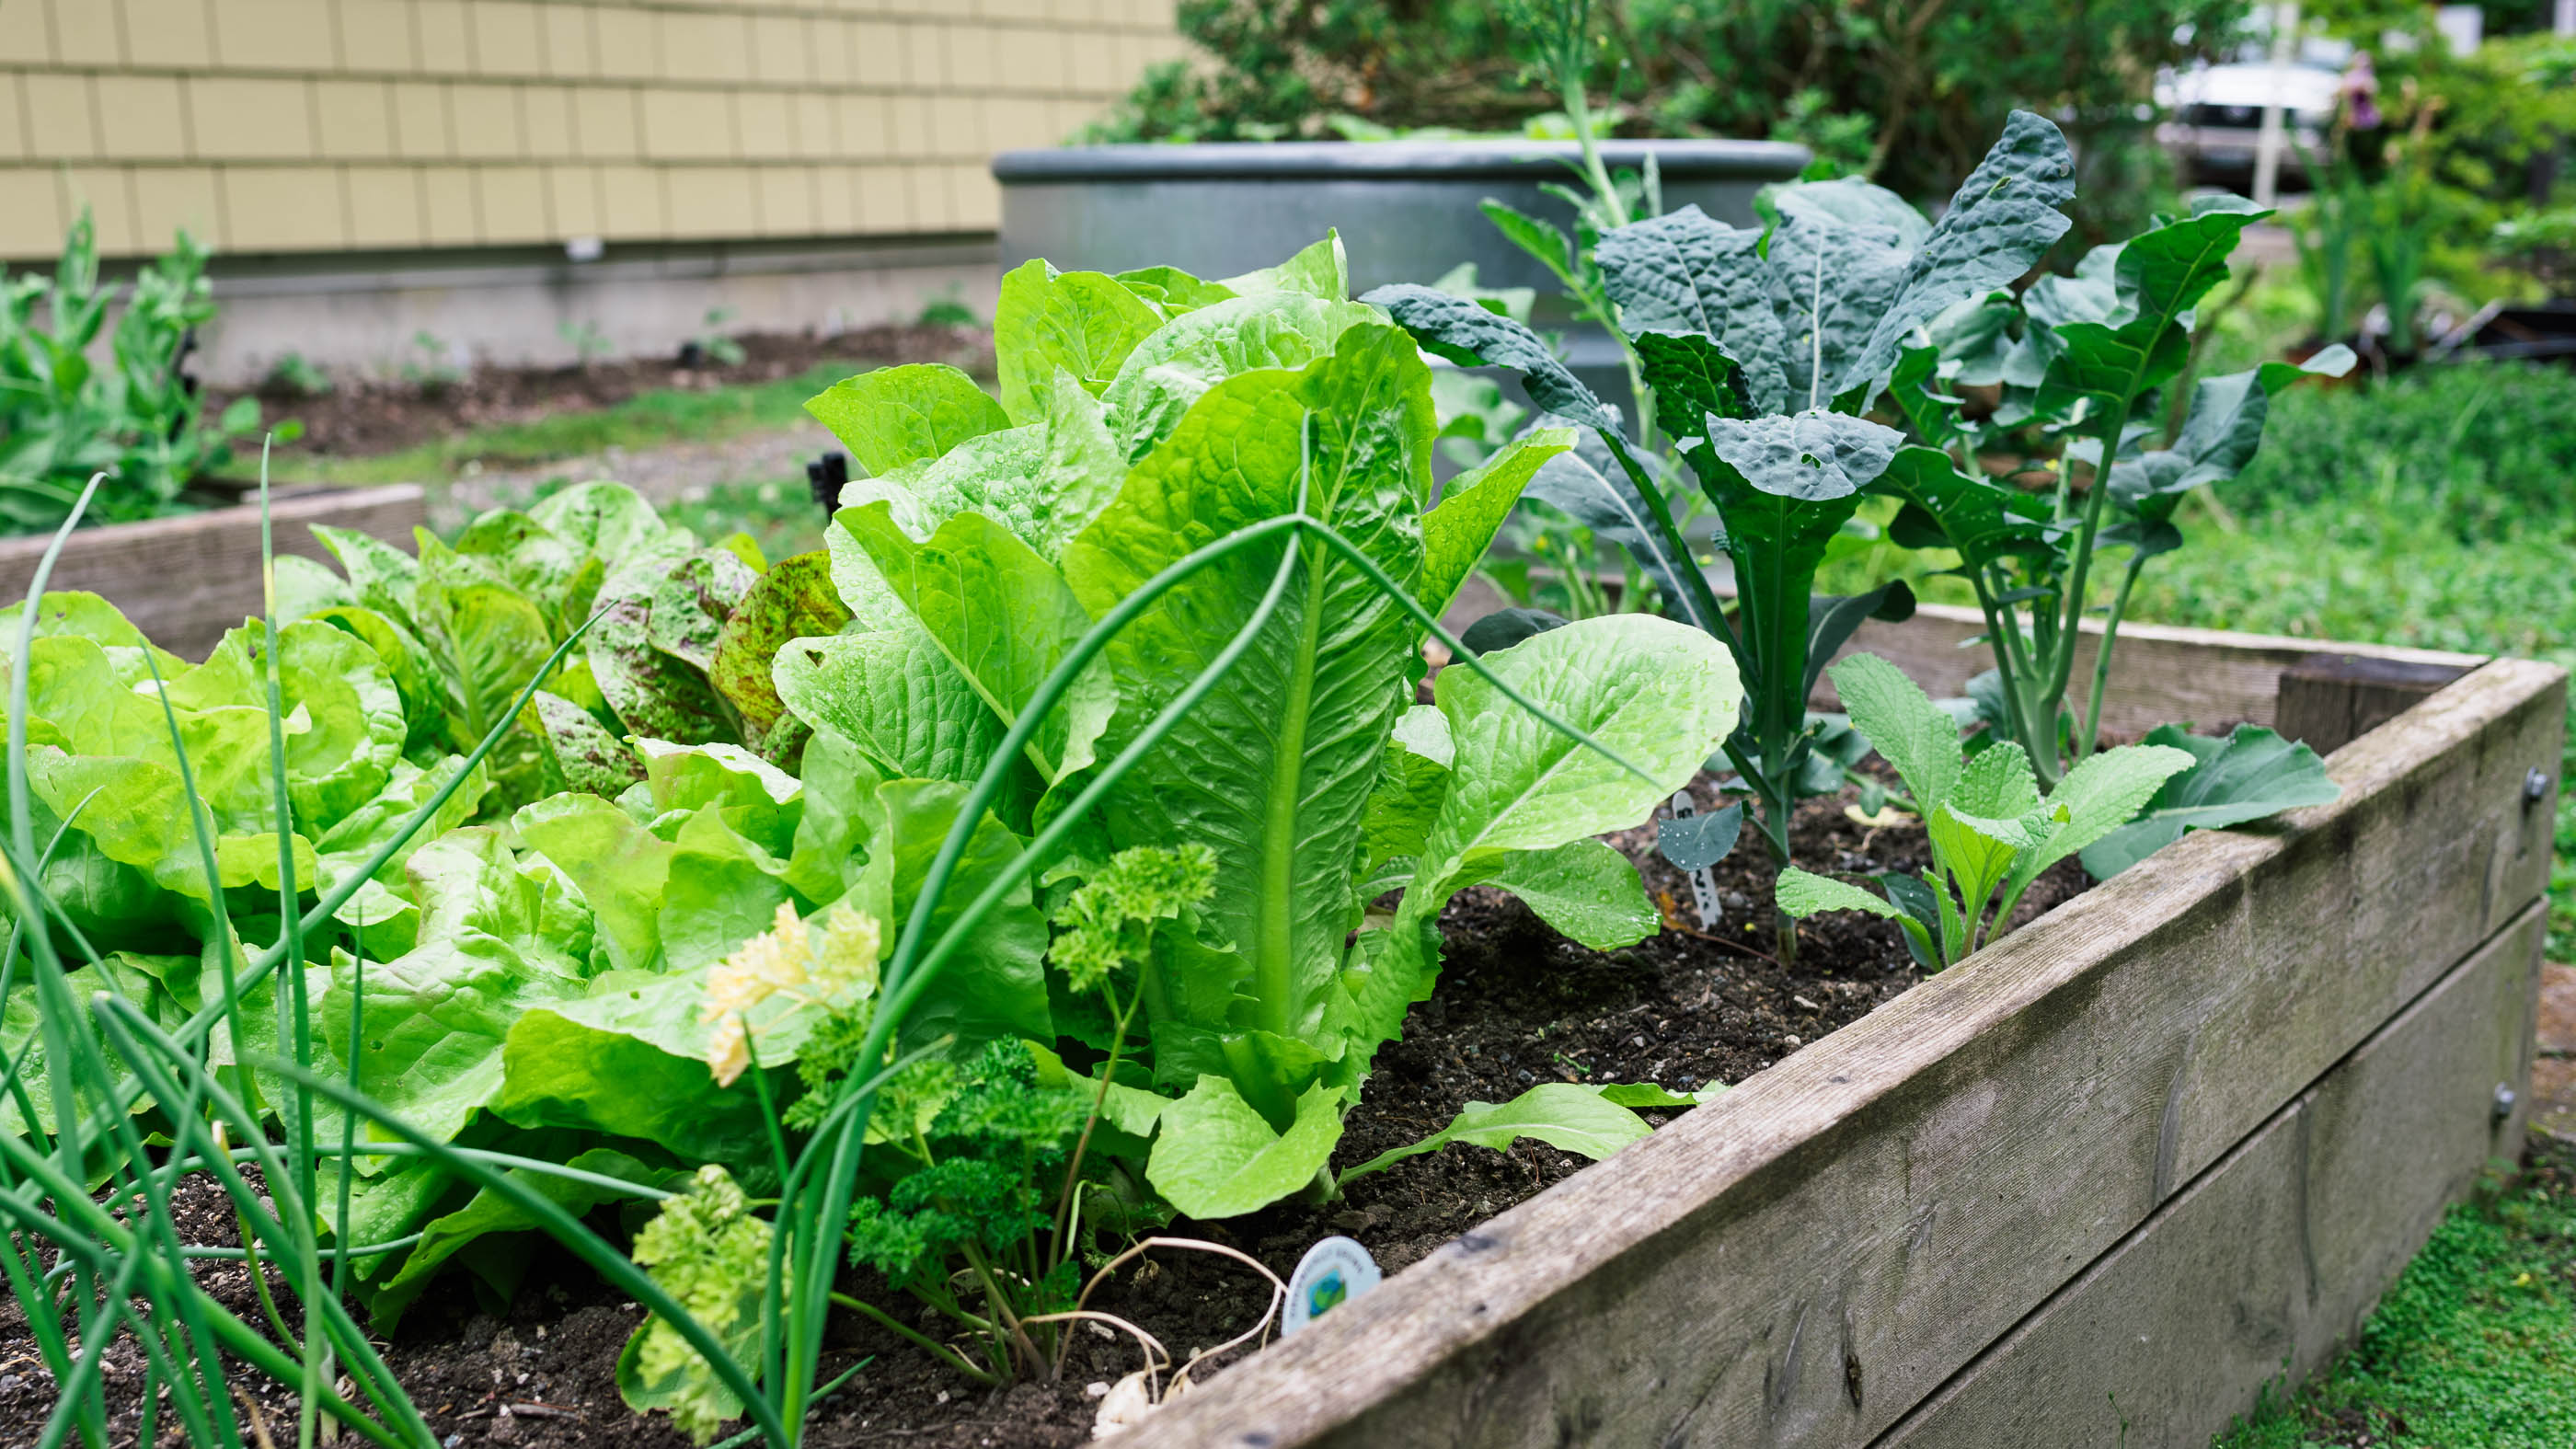 Lettuce and kale grow in a vegetable box